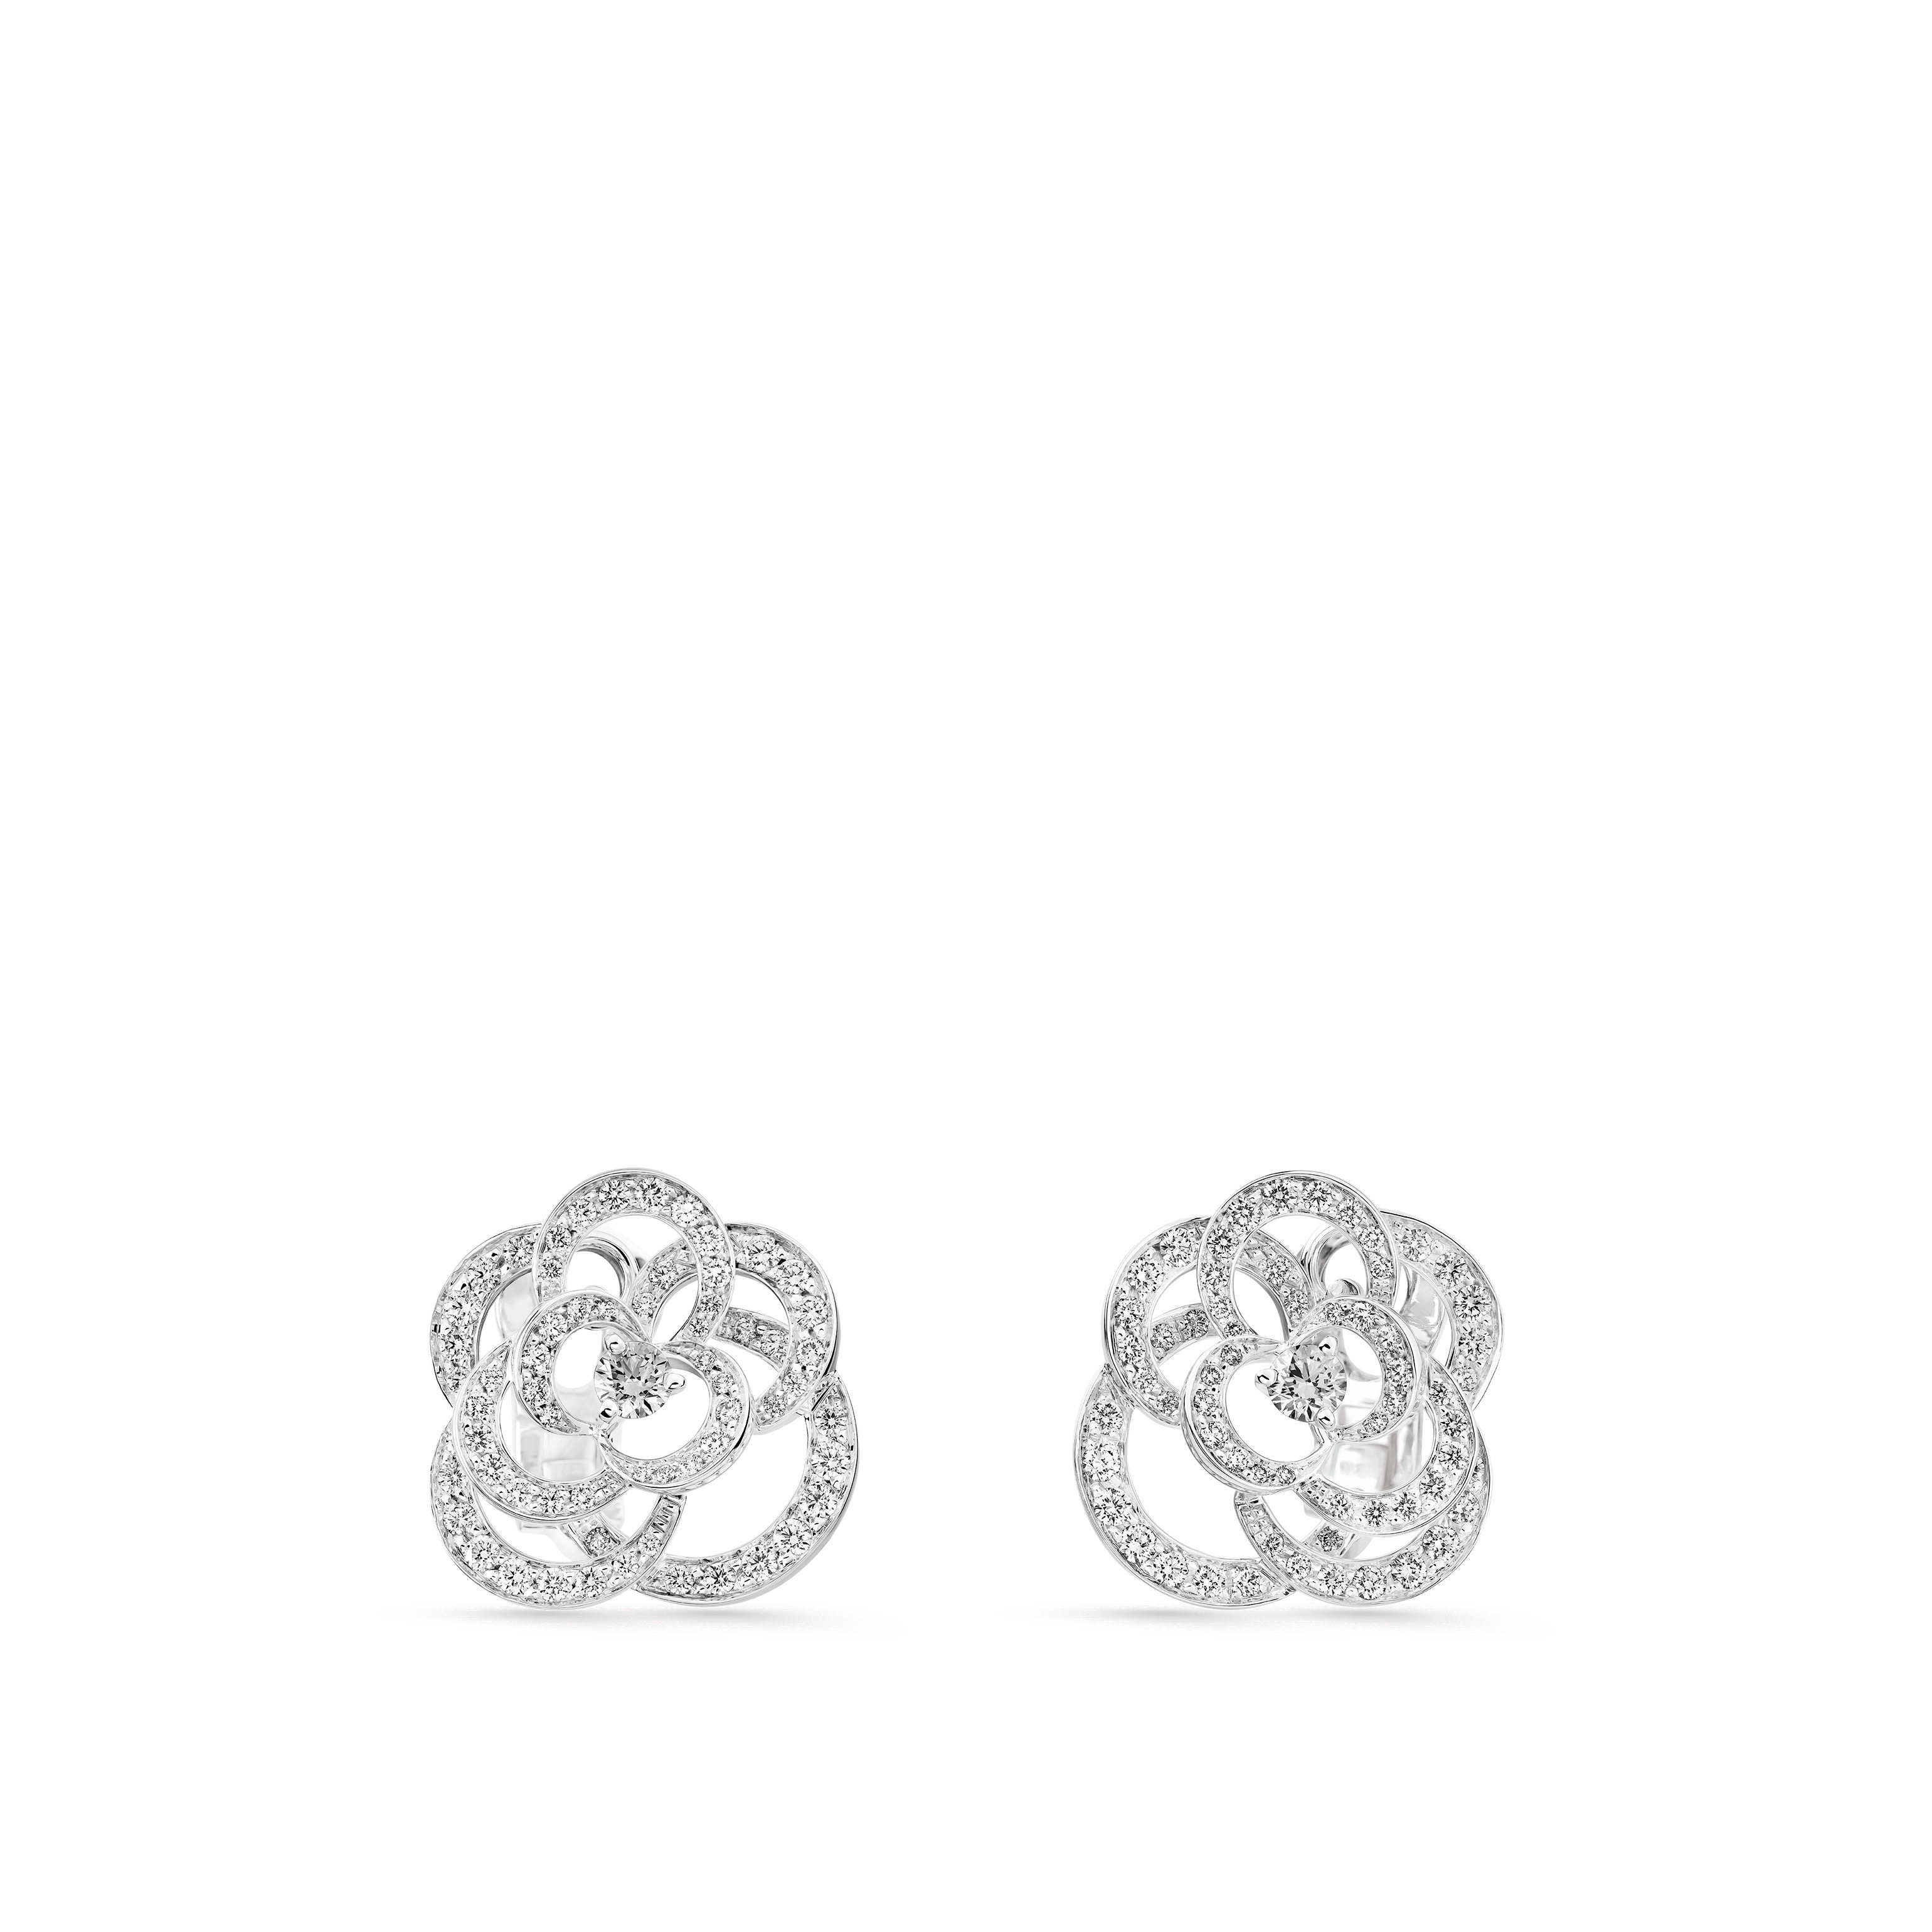 Fil de Camélia earrings - 18K white gold, diamonds - CHANEL - Default view - see standard sized version